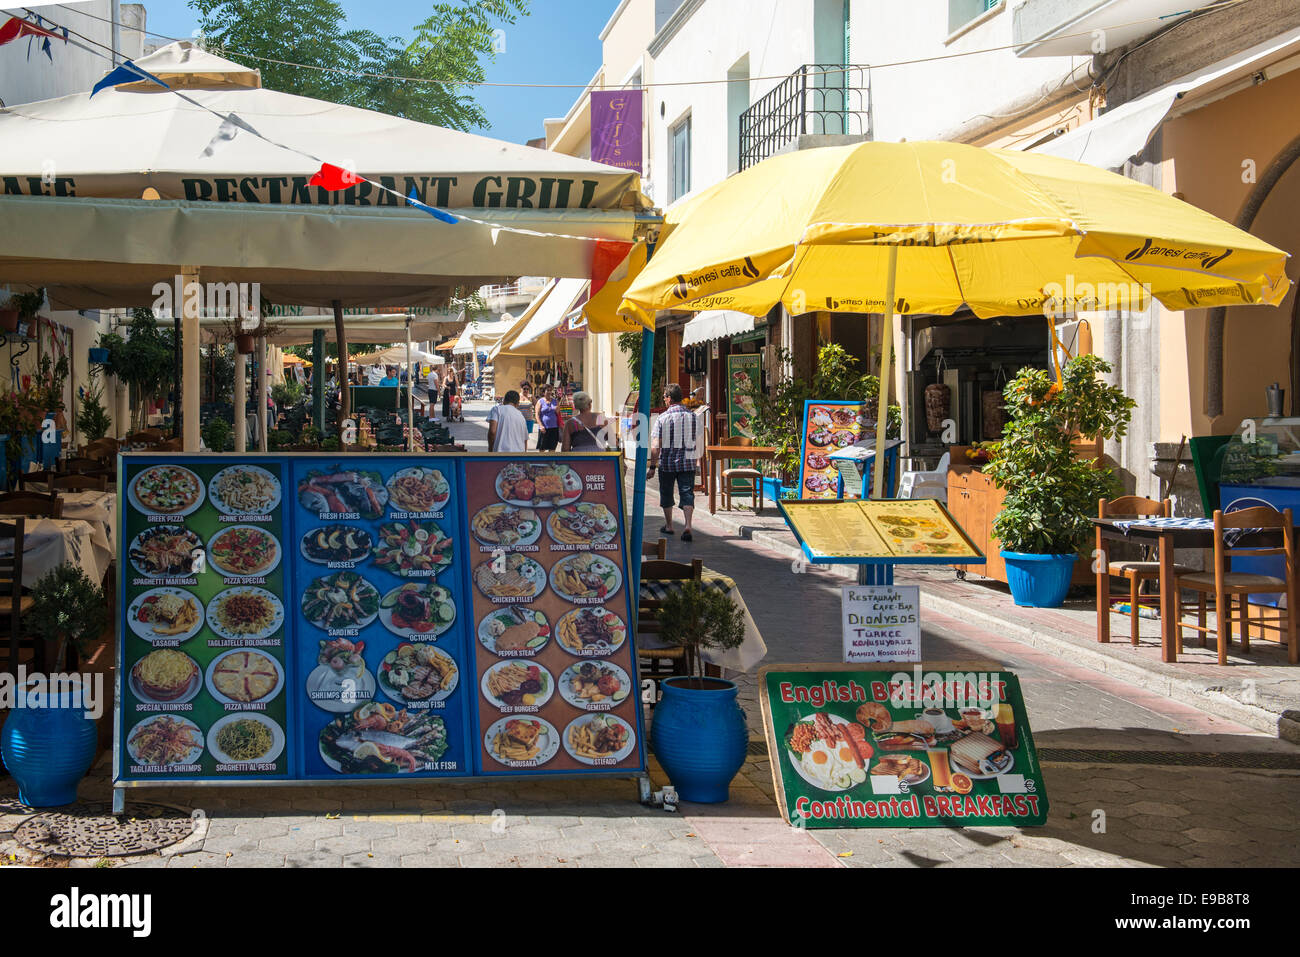 Board menu of a restaurant in the town of Kos, island of Kos, Greece - Stock Image